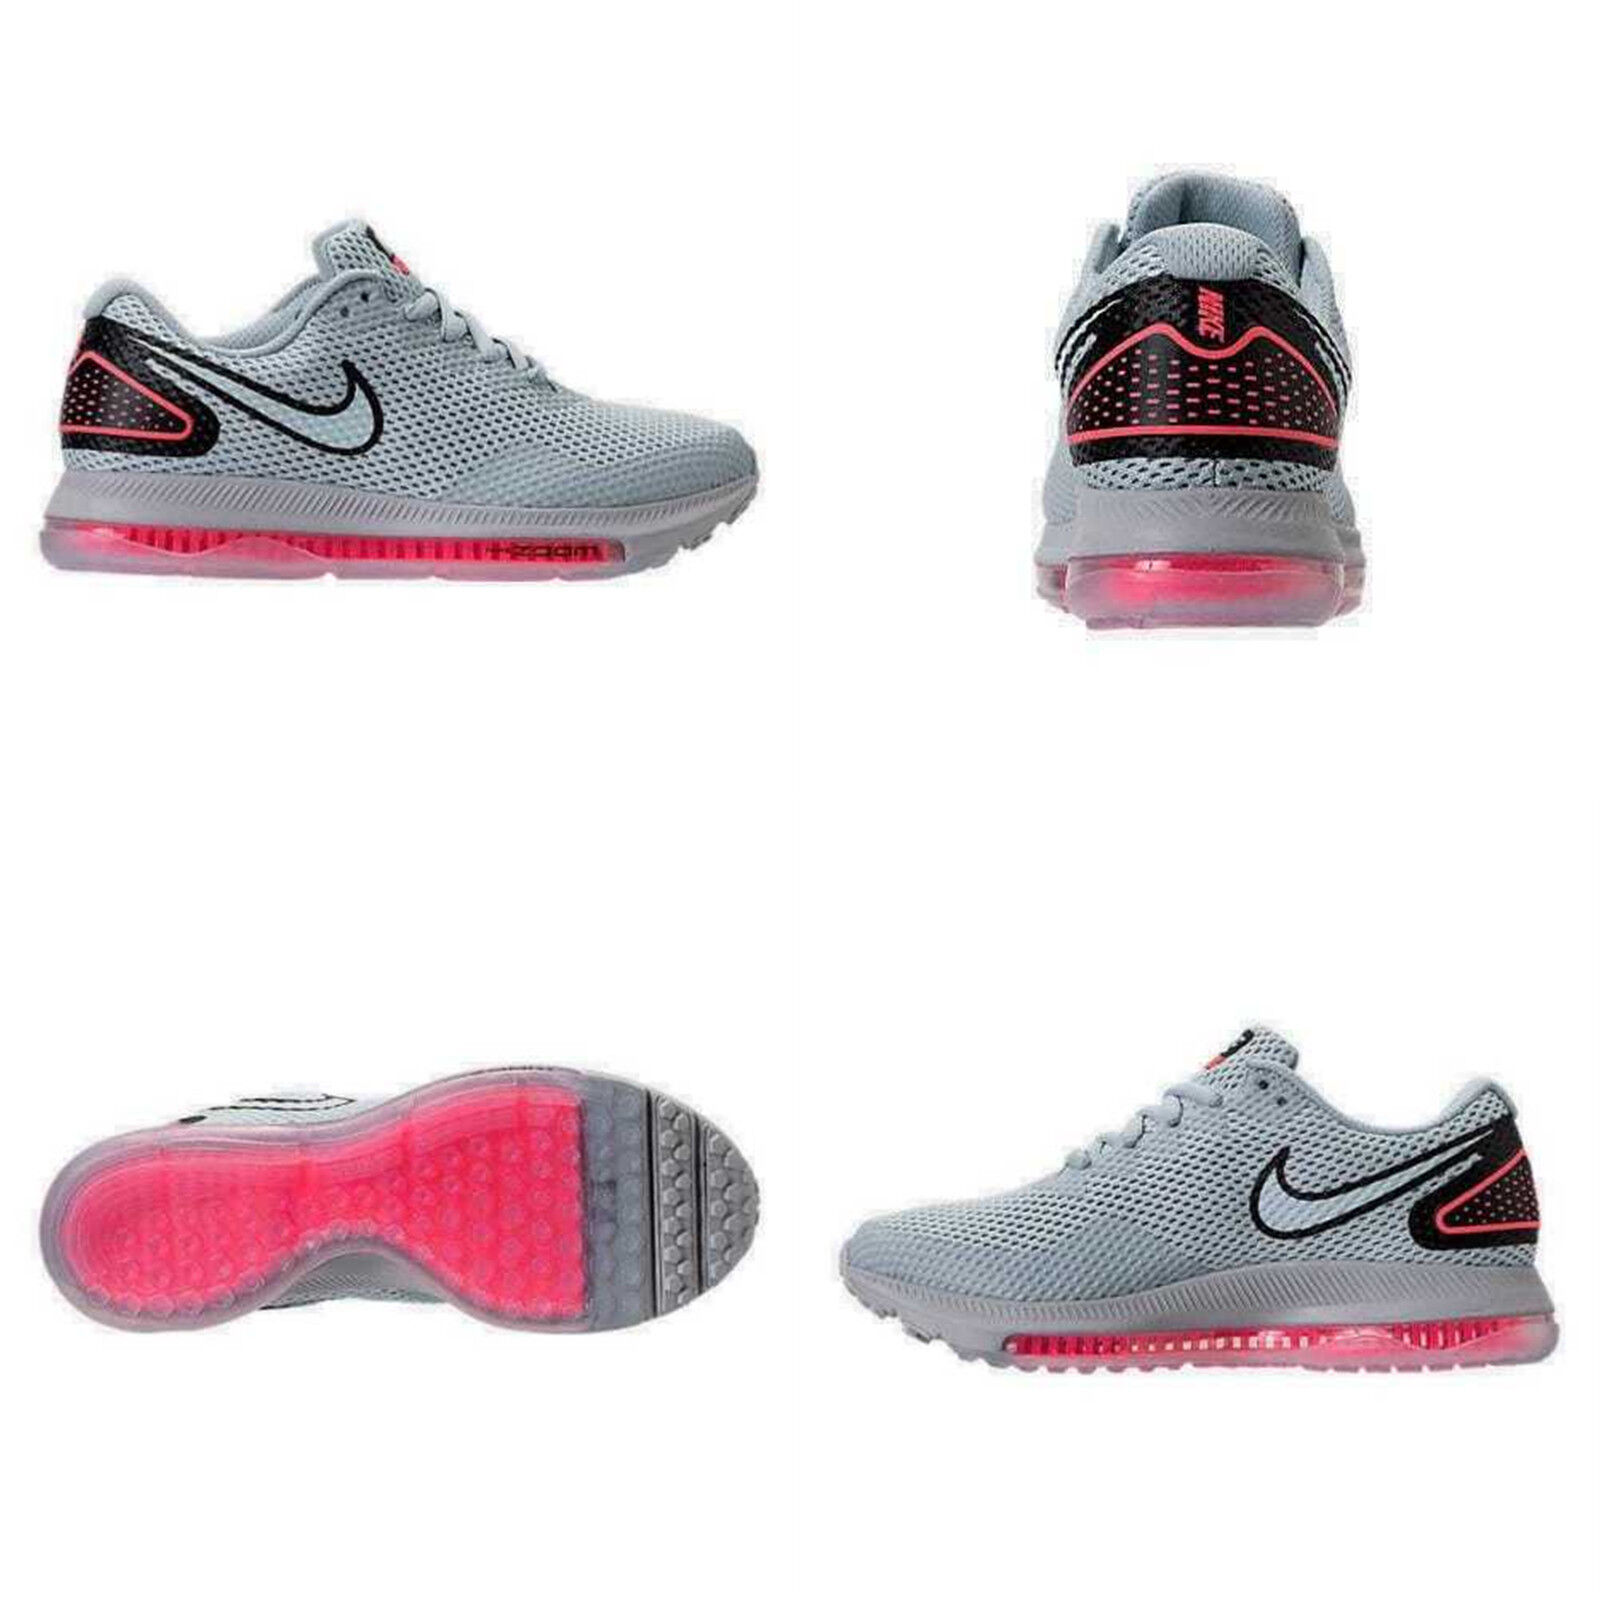 WOMEN'S NIKE ZOOM ALL OUT LOW 2 (AJ0036-401),OCEAN BLISS,Running shoes.NWB